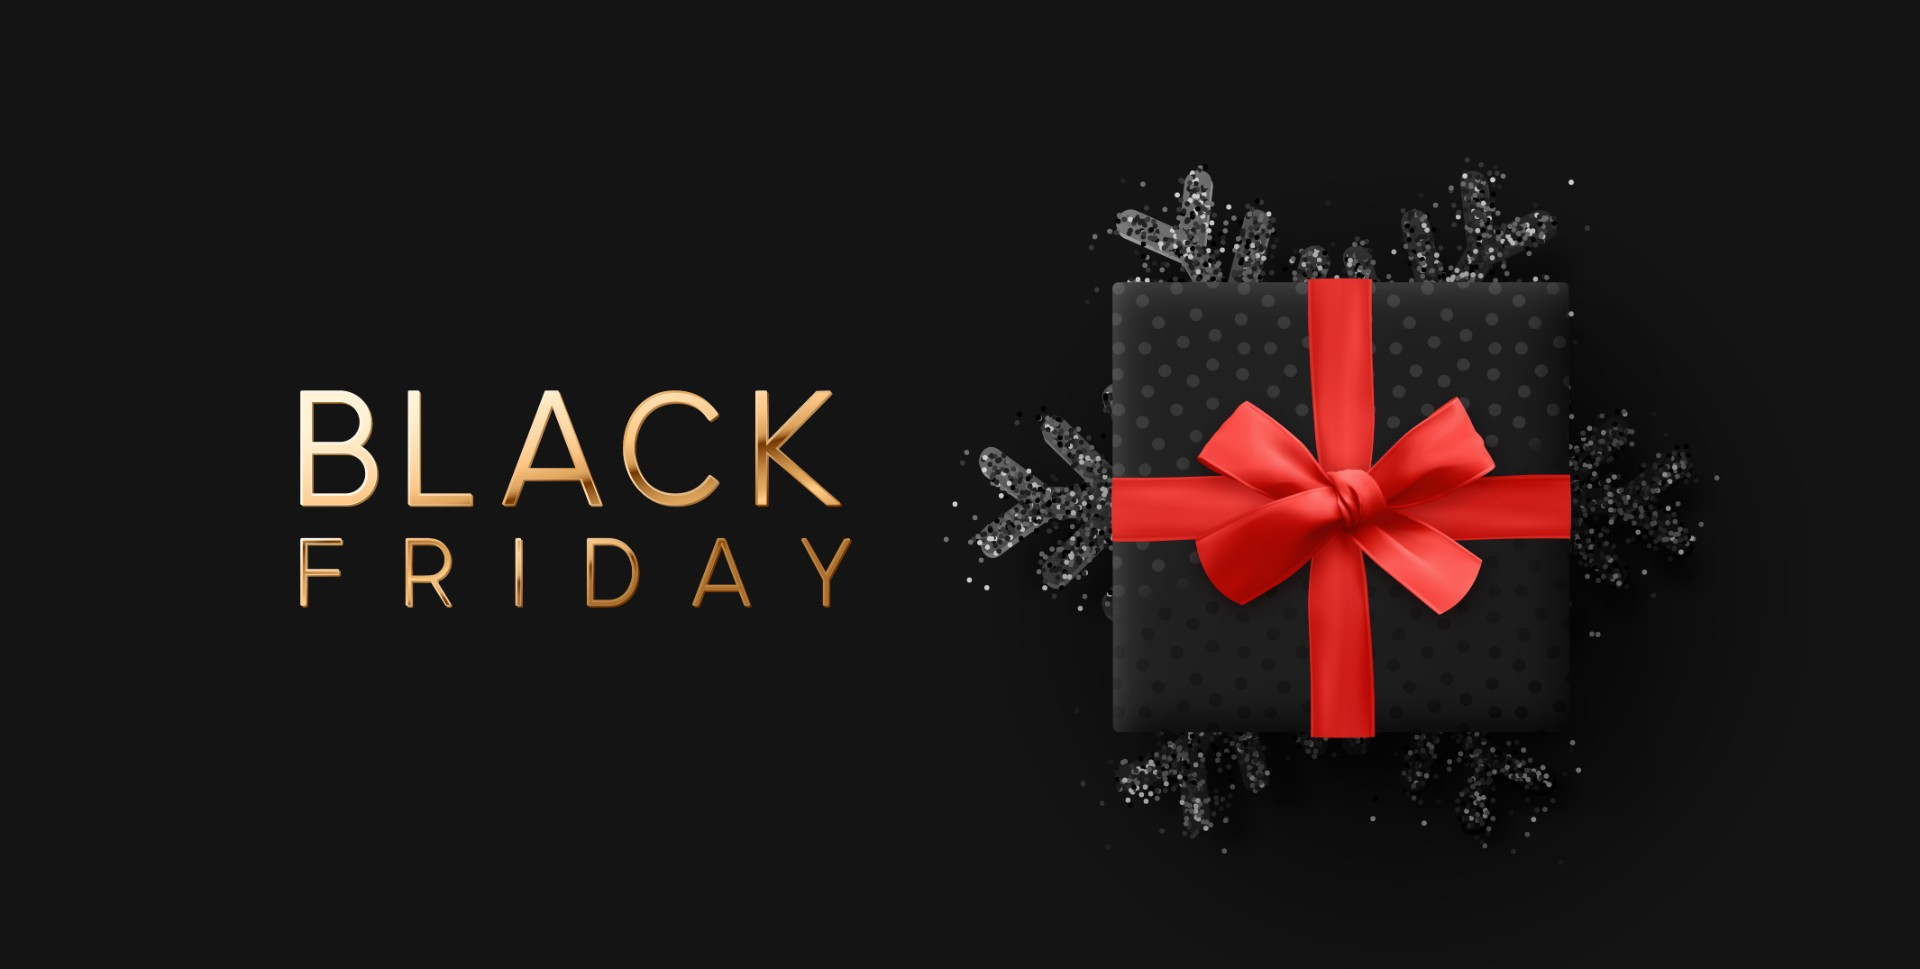 Top Black Friday Deals & Offers - Worldwide Sale